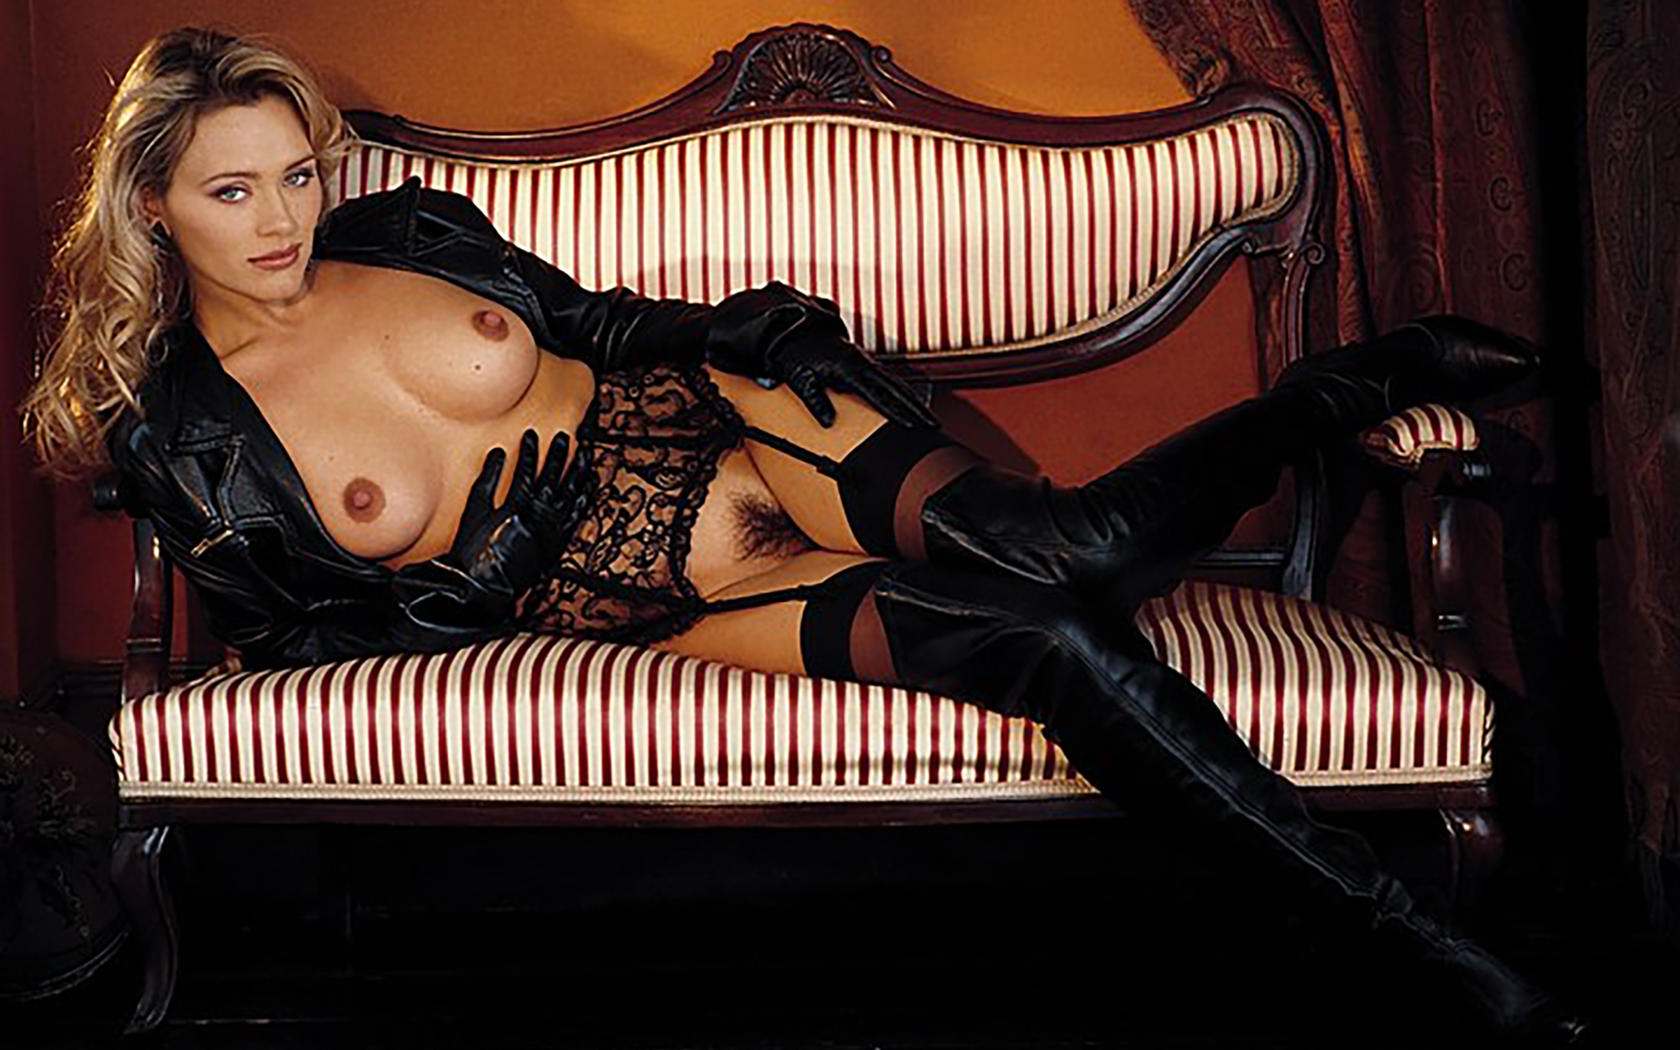 Playmate in leather boots